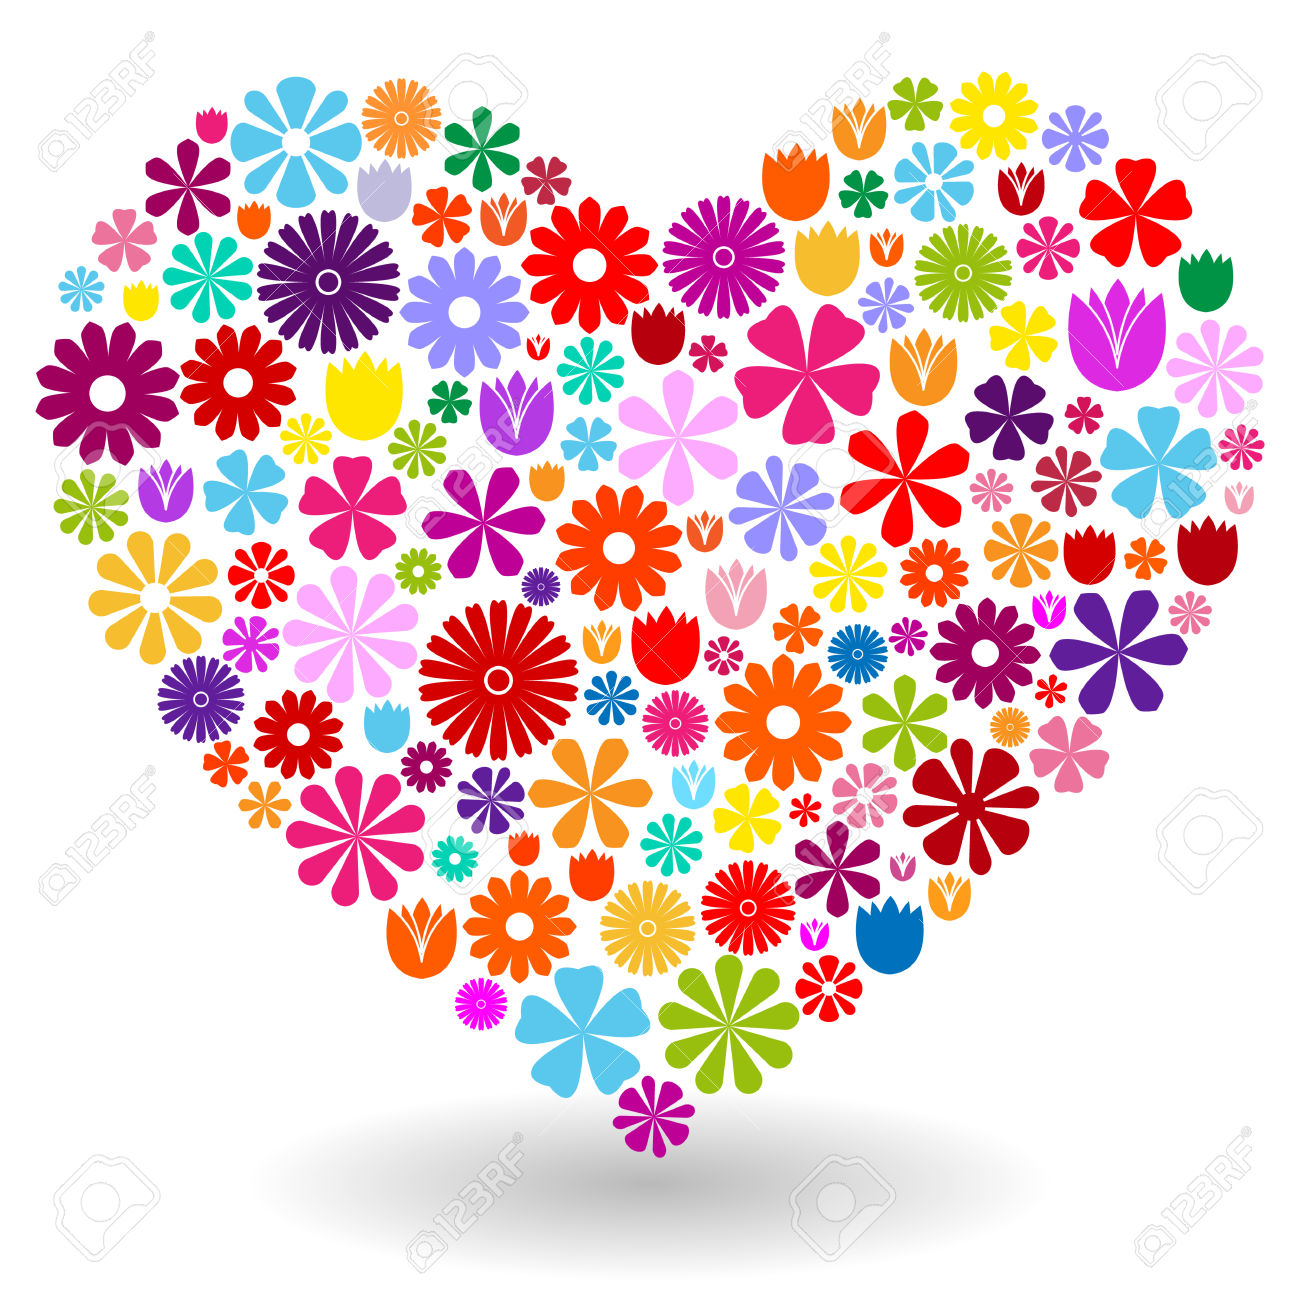 Heart Shape Made By Colorful Flowers With Shadow On White Royalty.